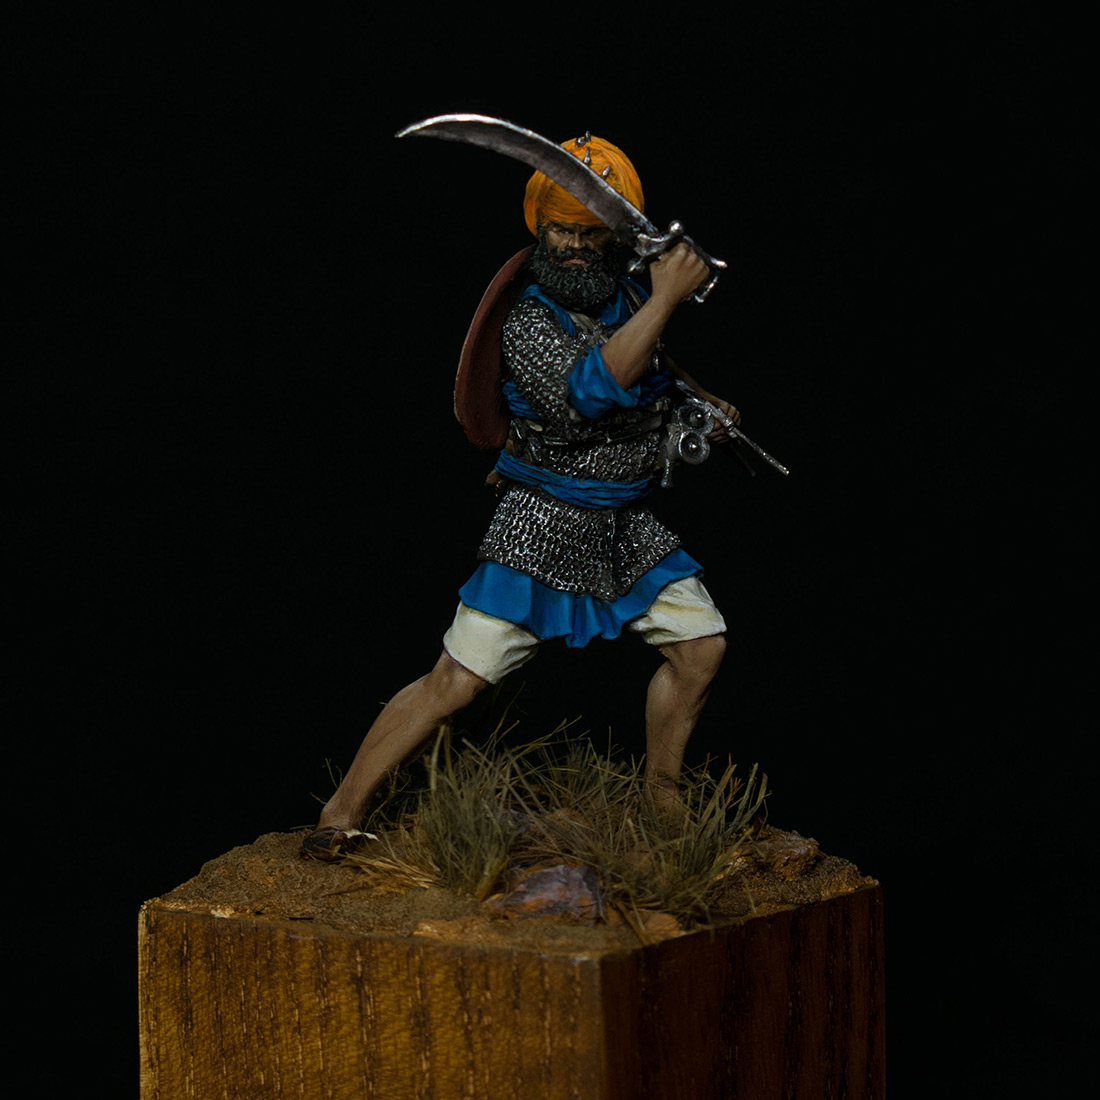 Figures: Sikh warrior, photo #8